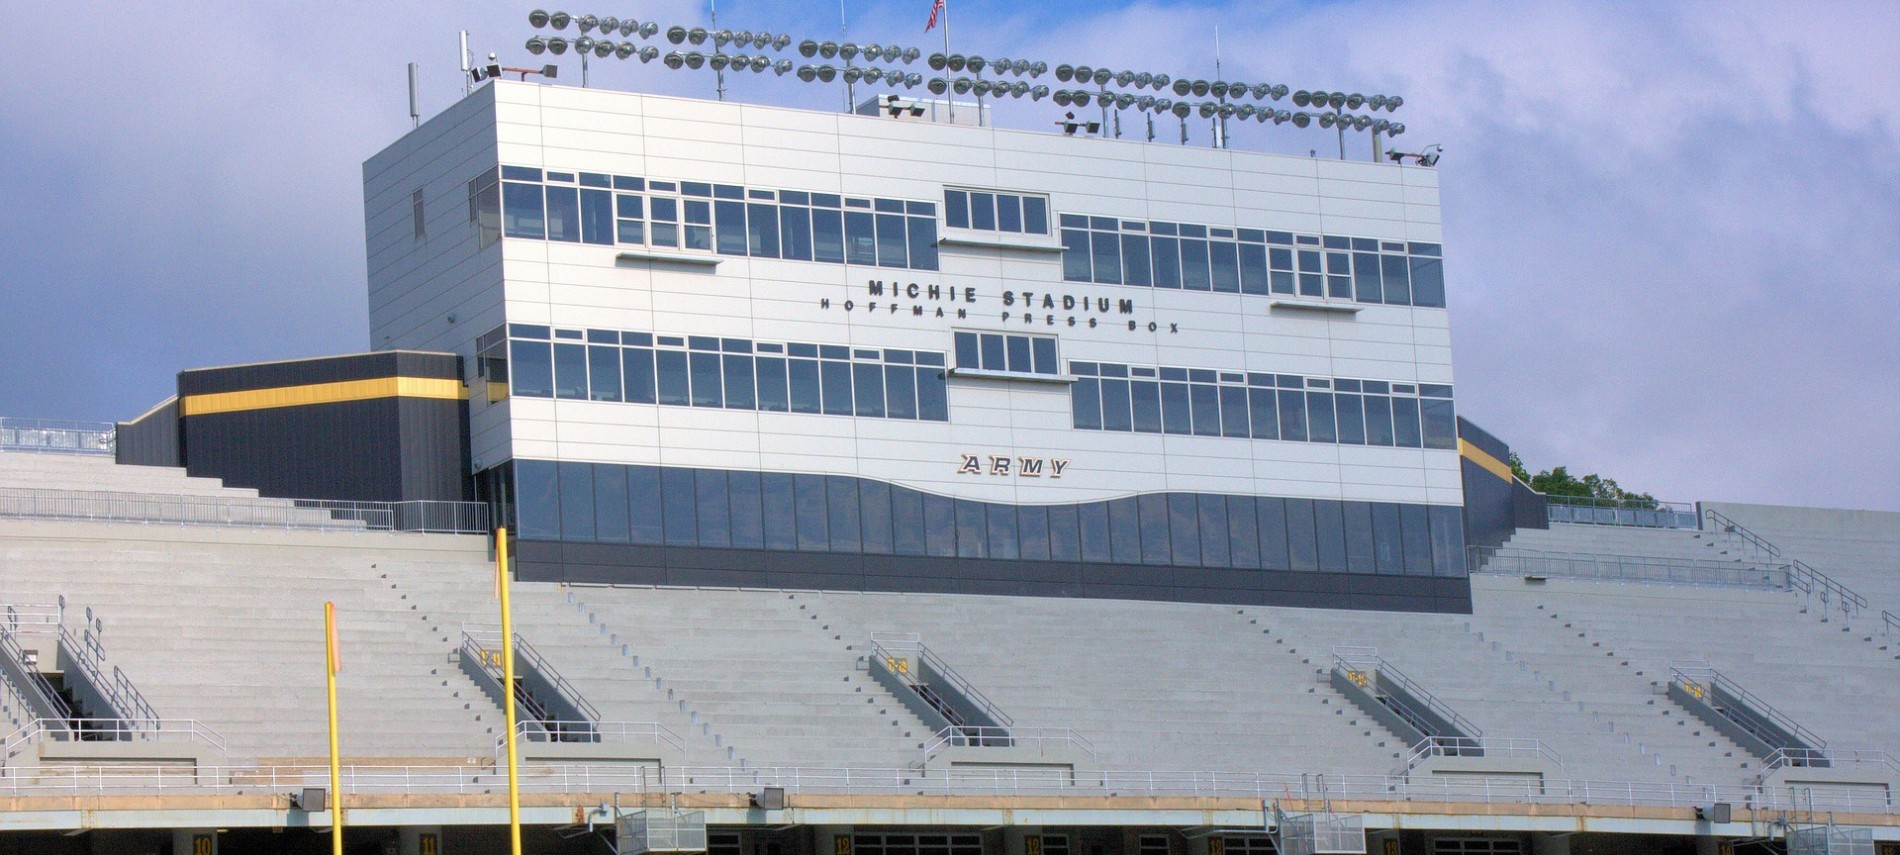 Expansive view of the outside of a large football stadium with blue sky in background